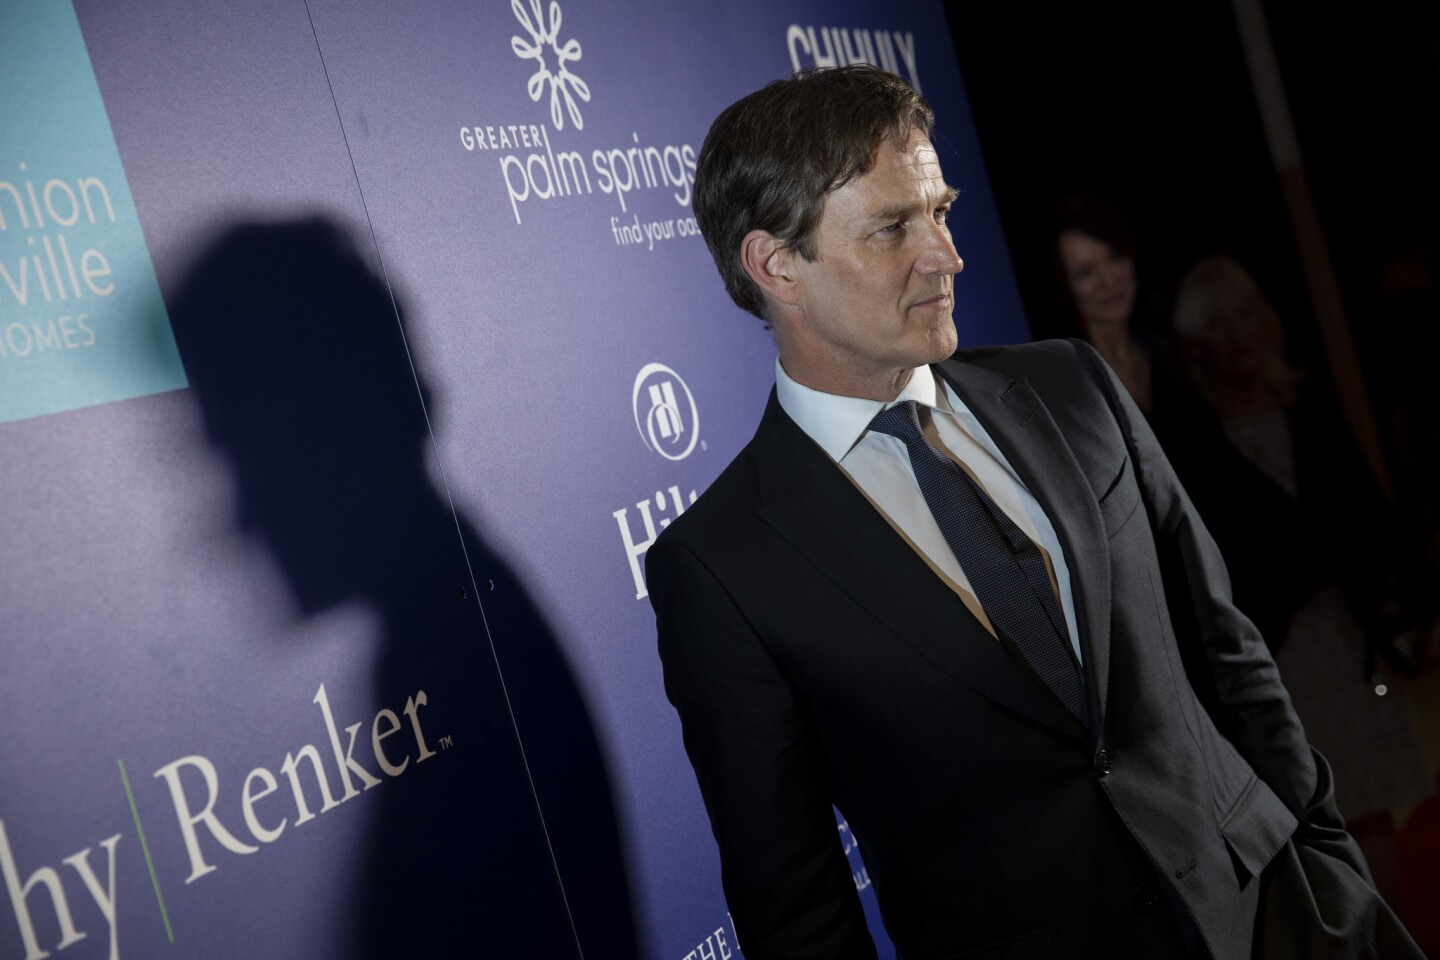 """Director Stephen Moyer poses on the carpet before the opening night screening of Kenneth Branagh's film, """"All is True,"""" at Palm Springs High School."""